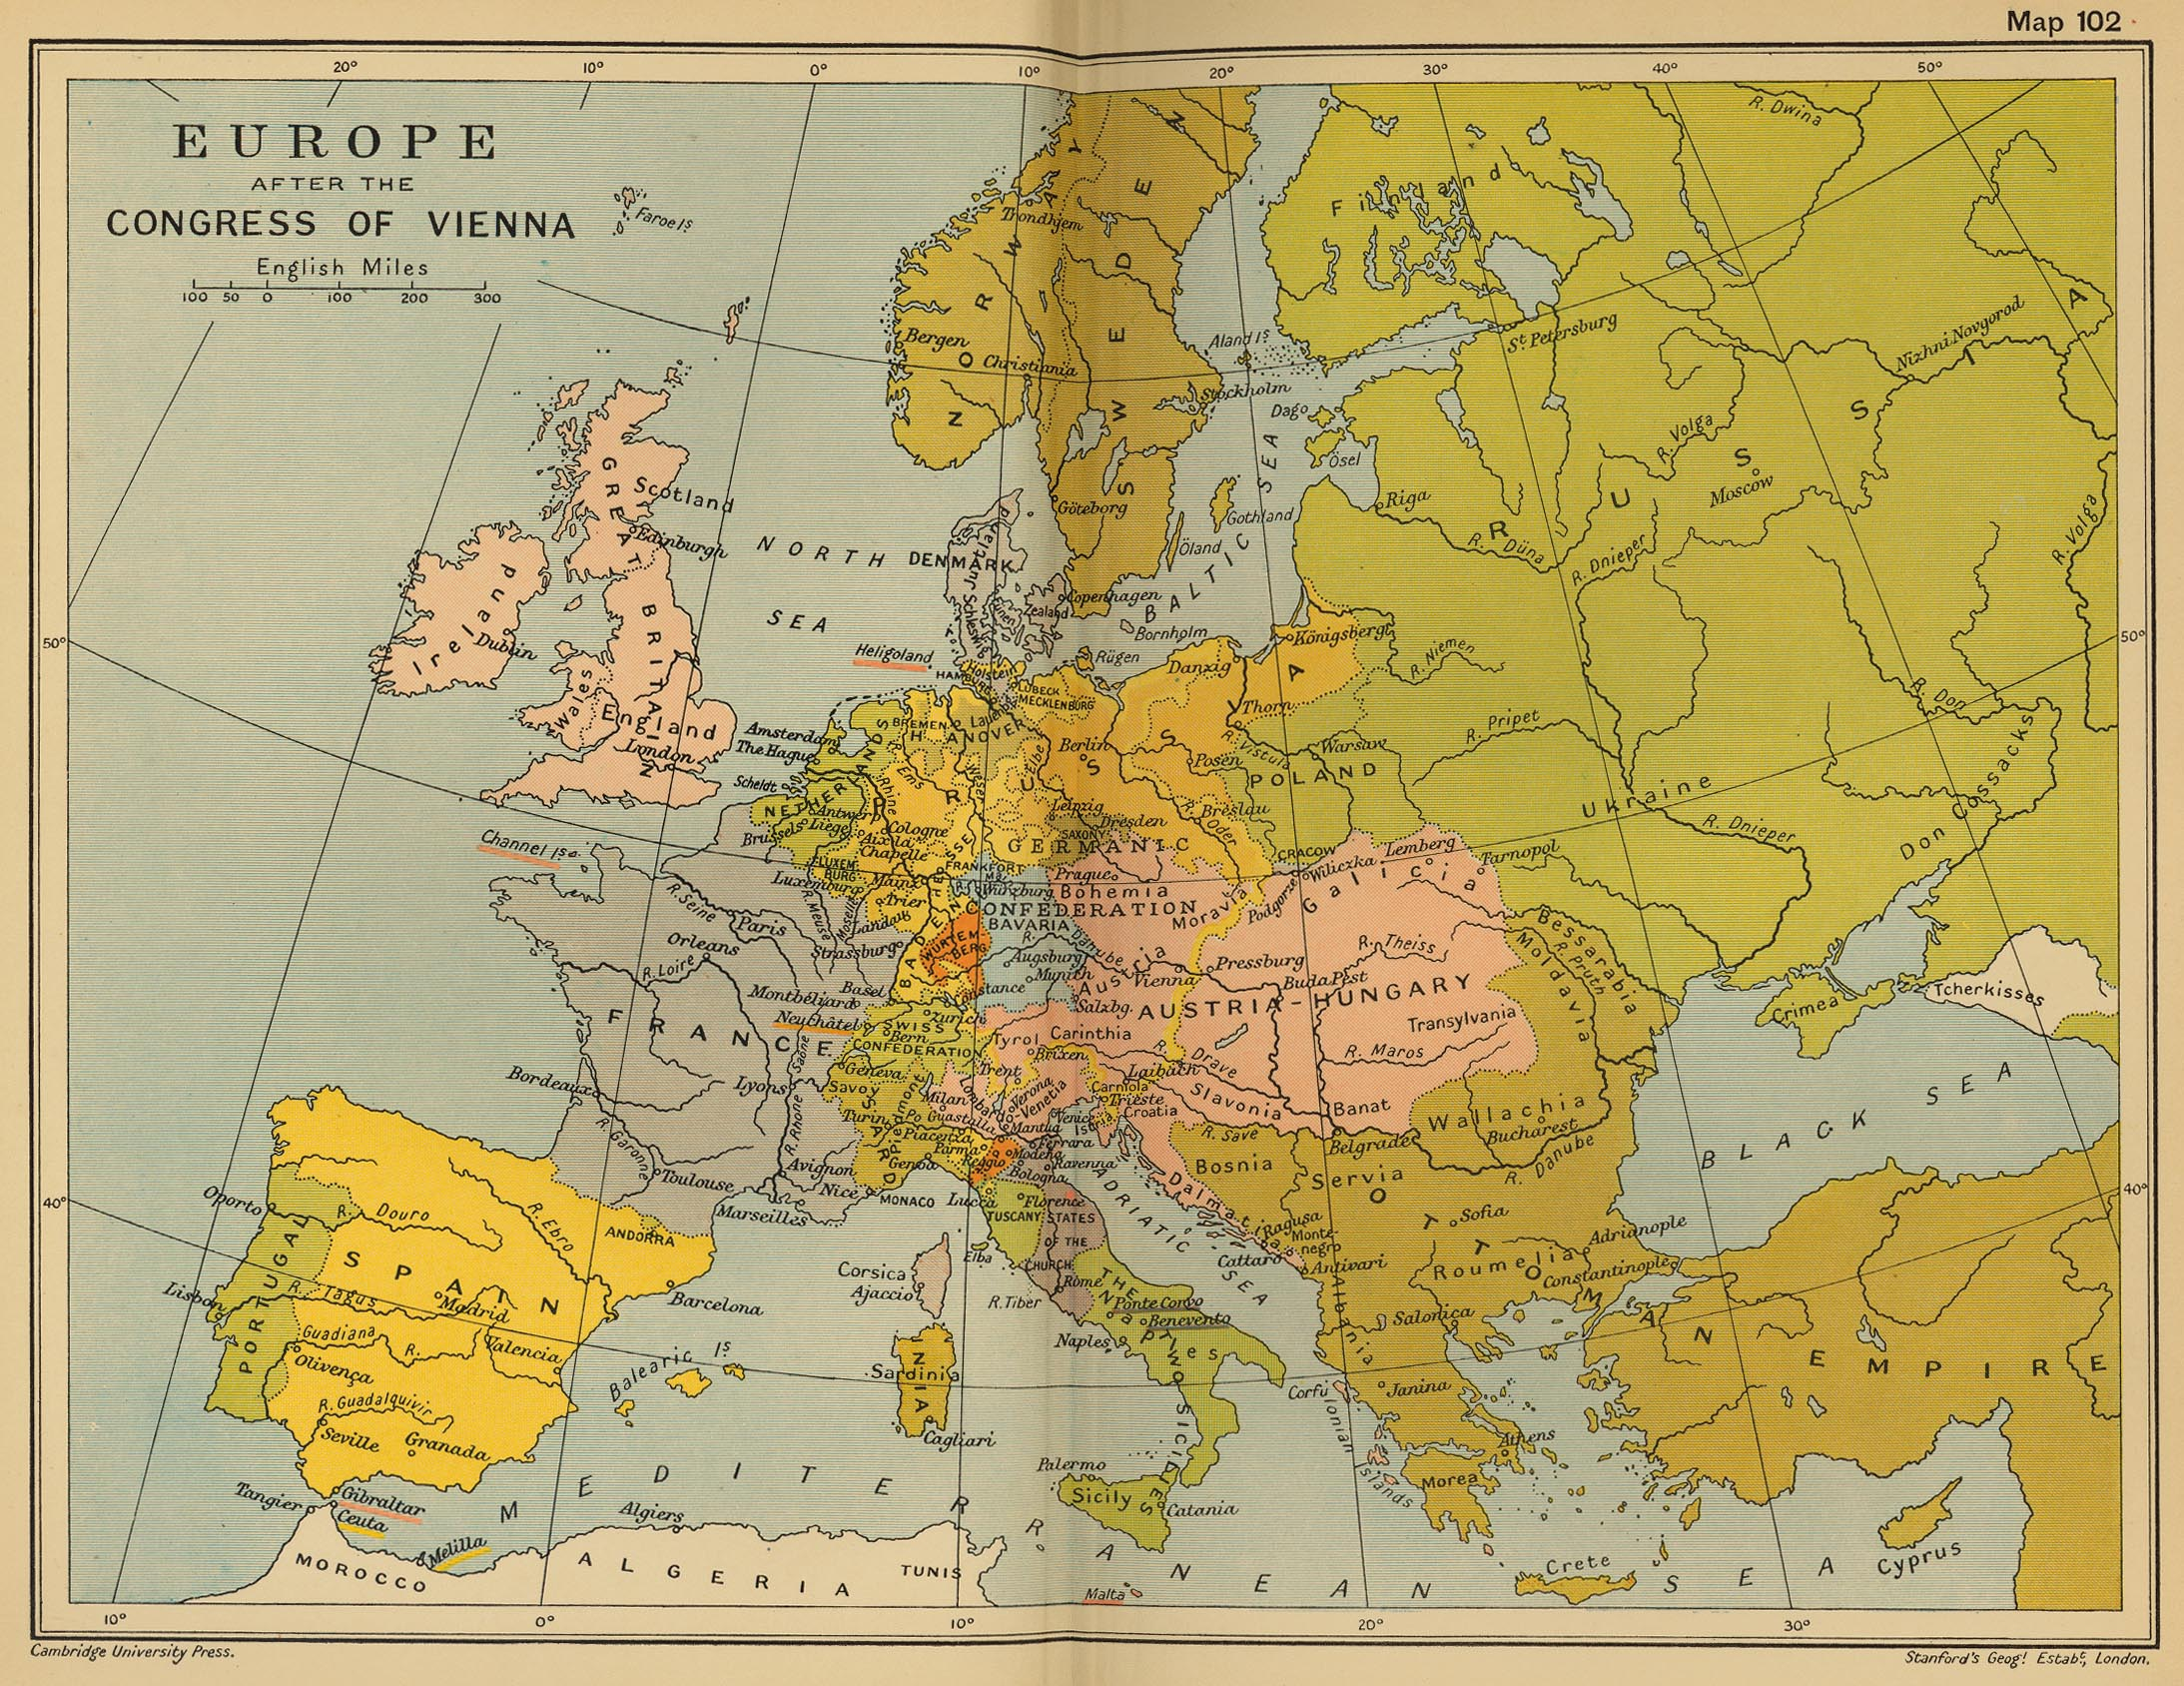 Europe in 1815 after the Congress of Vienna